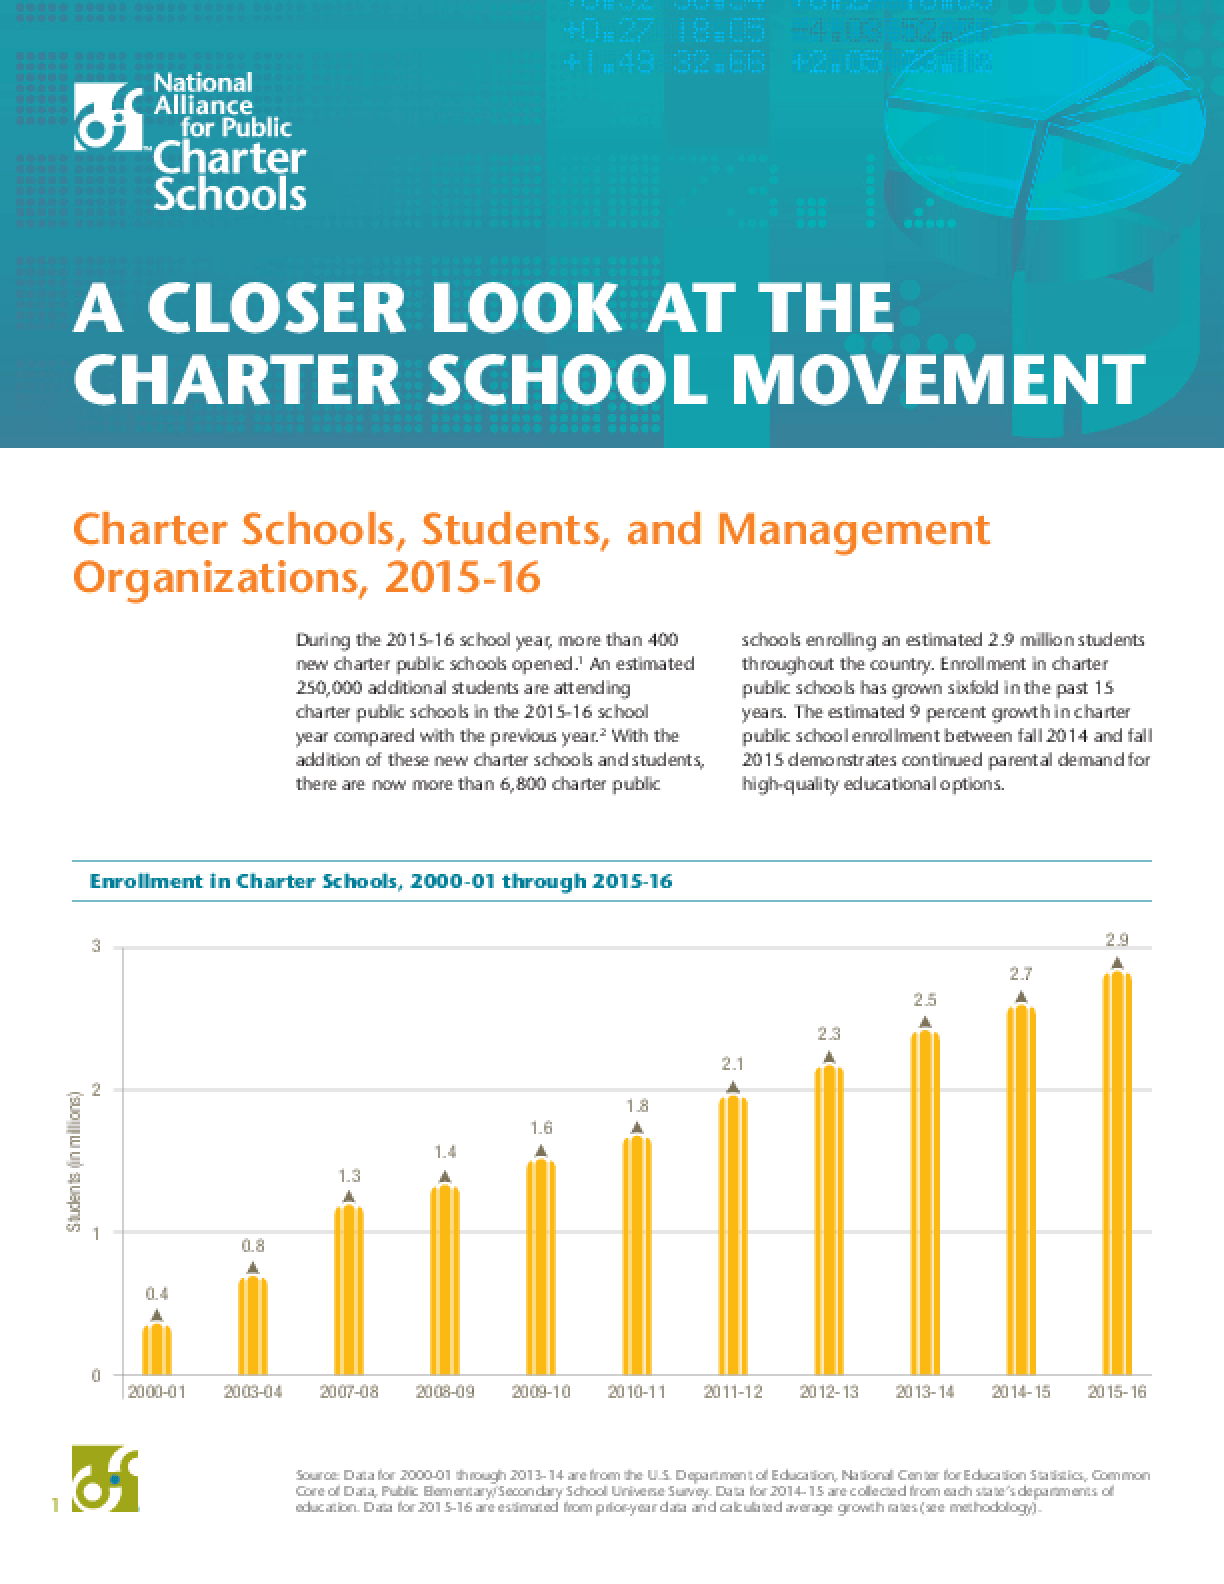 A Closer Look at the Charter School Movement: Charter Schools, Students, and Management Organizations, 2015-16